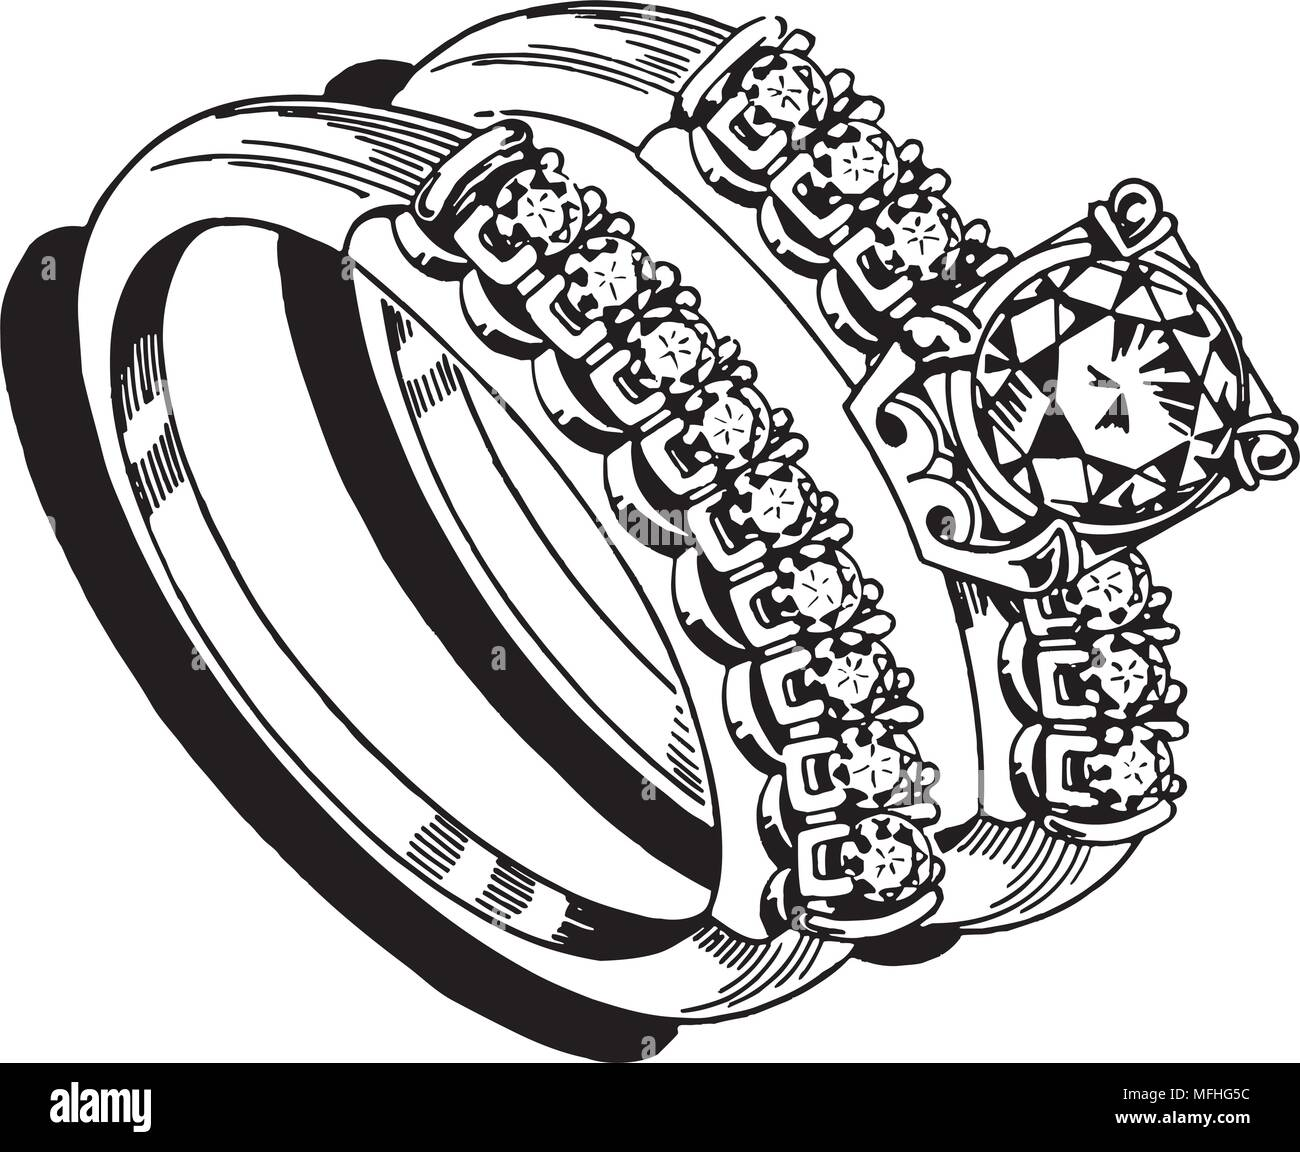 Meine Damen Hochzeit Ring Set 2 Retro Clipart Illustration Vektor